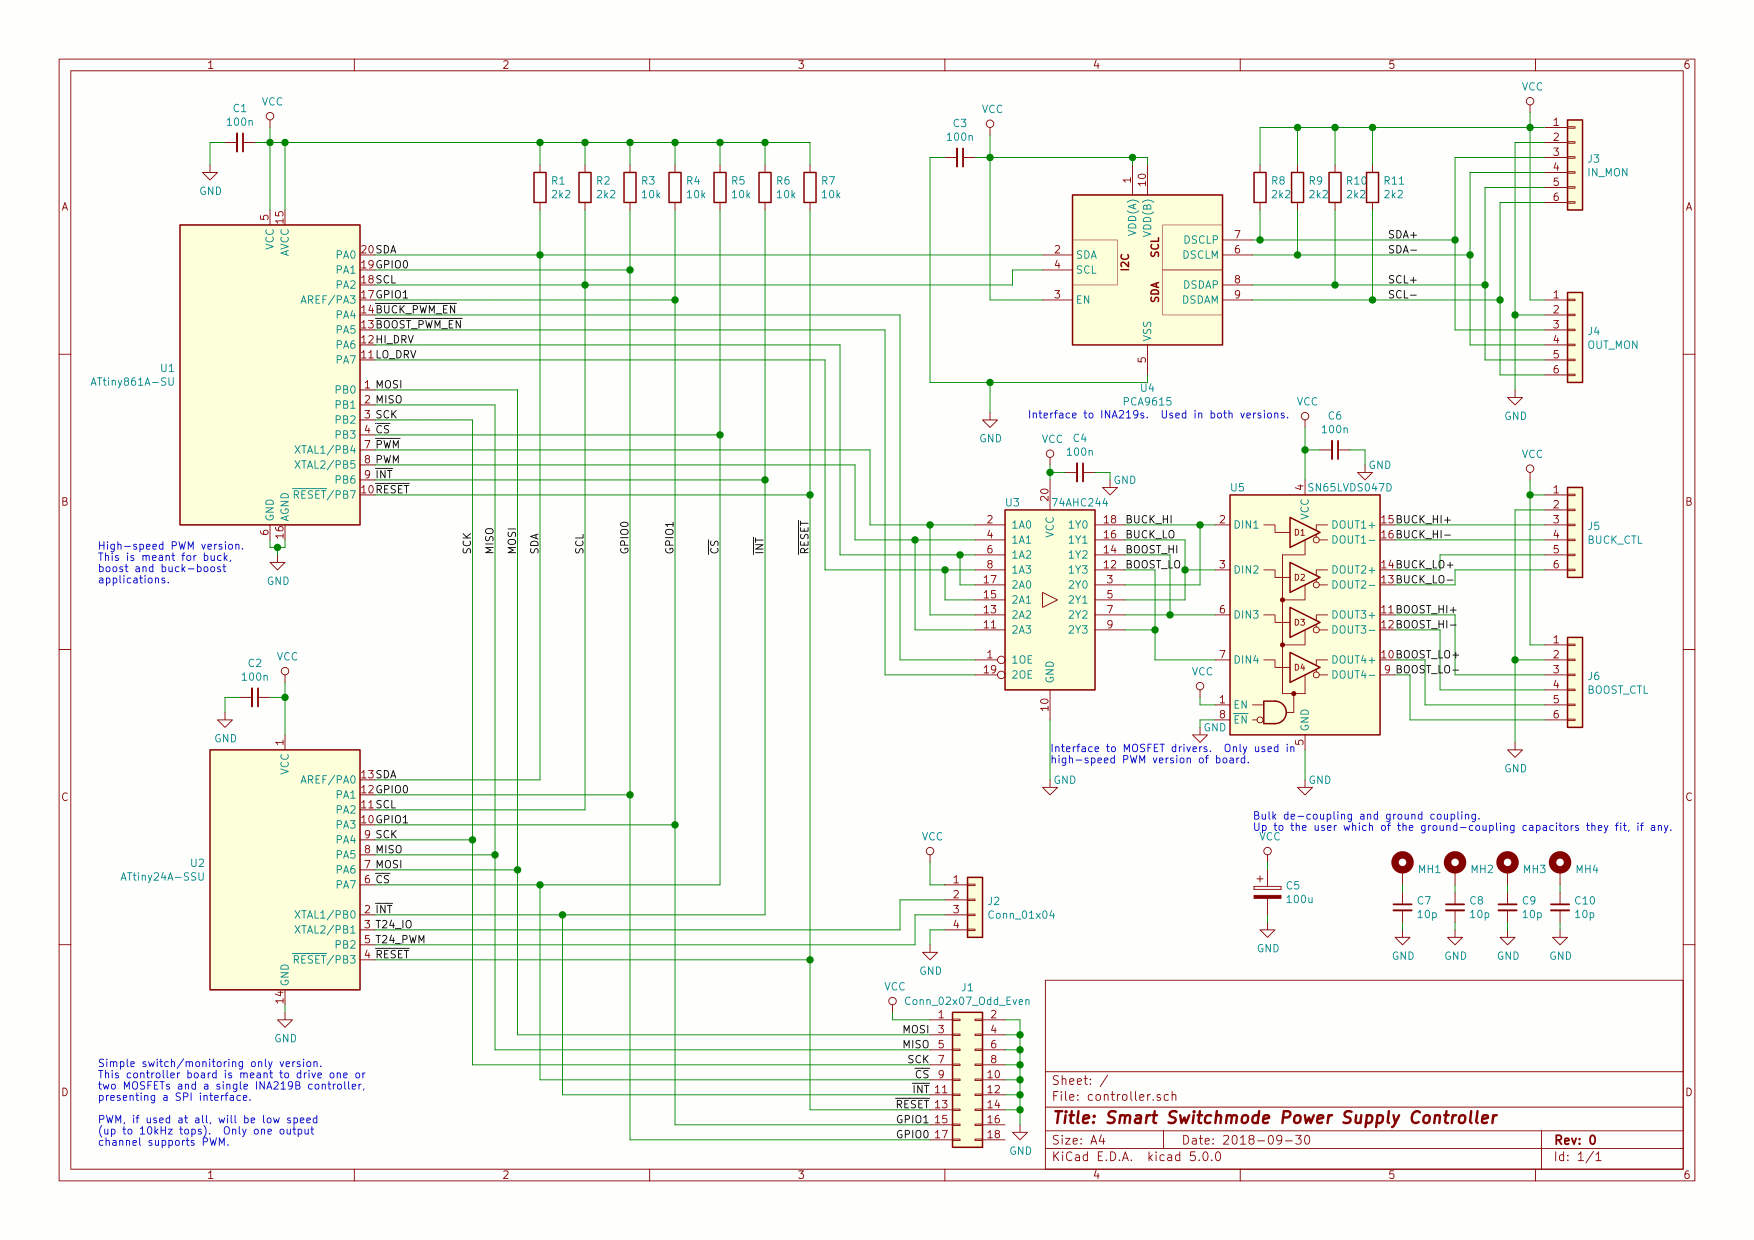 Project High Power Dc Supply To Converter Circuit Also Buck Boost Design For Two Versions On This Board One With An Attiny861 Which Does Speed 250khz Pwm And Can Drive A Or